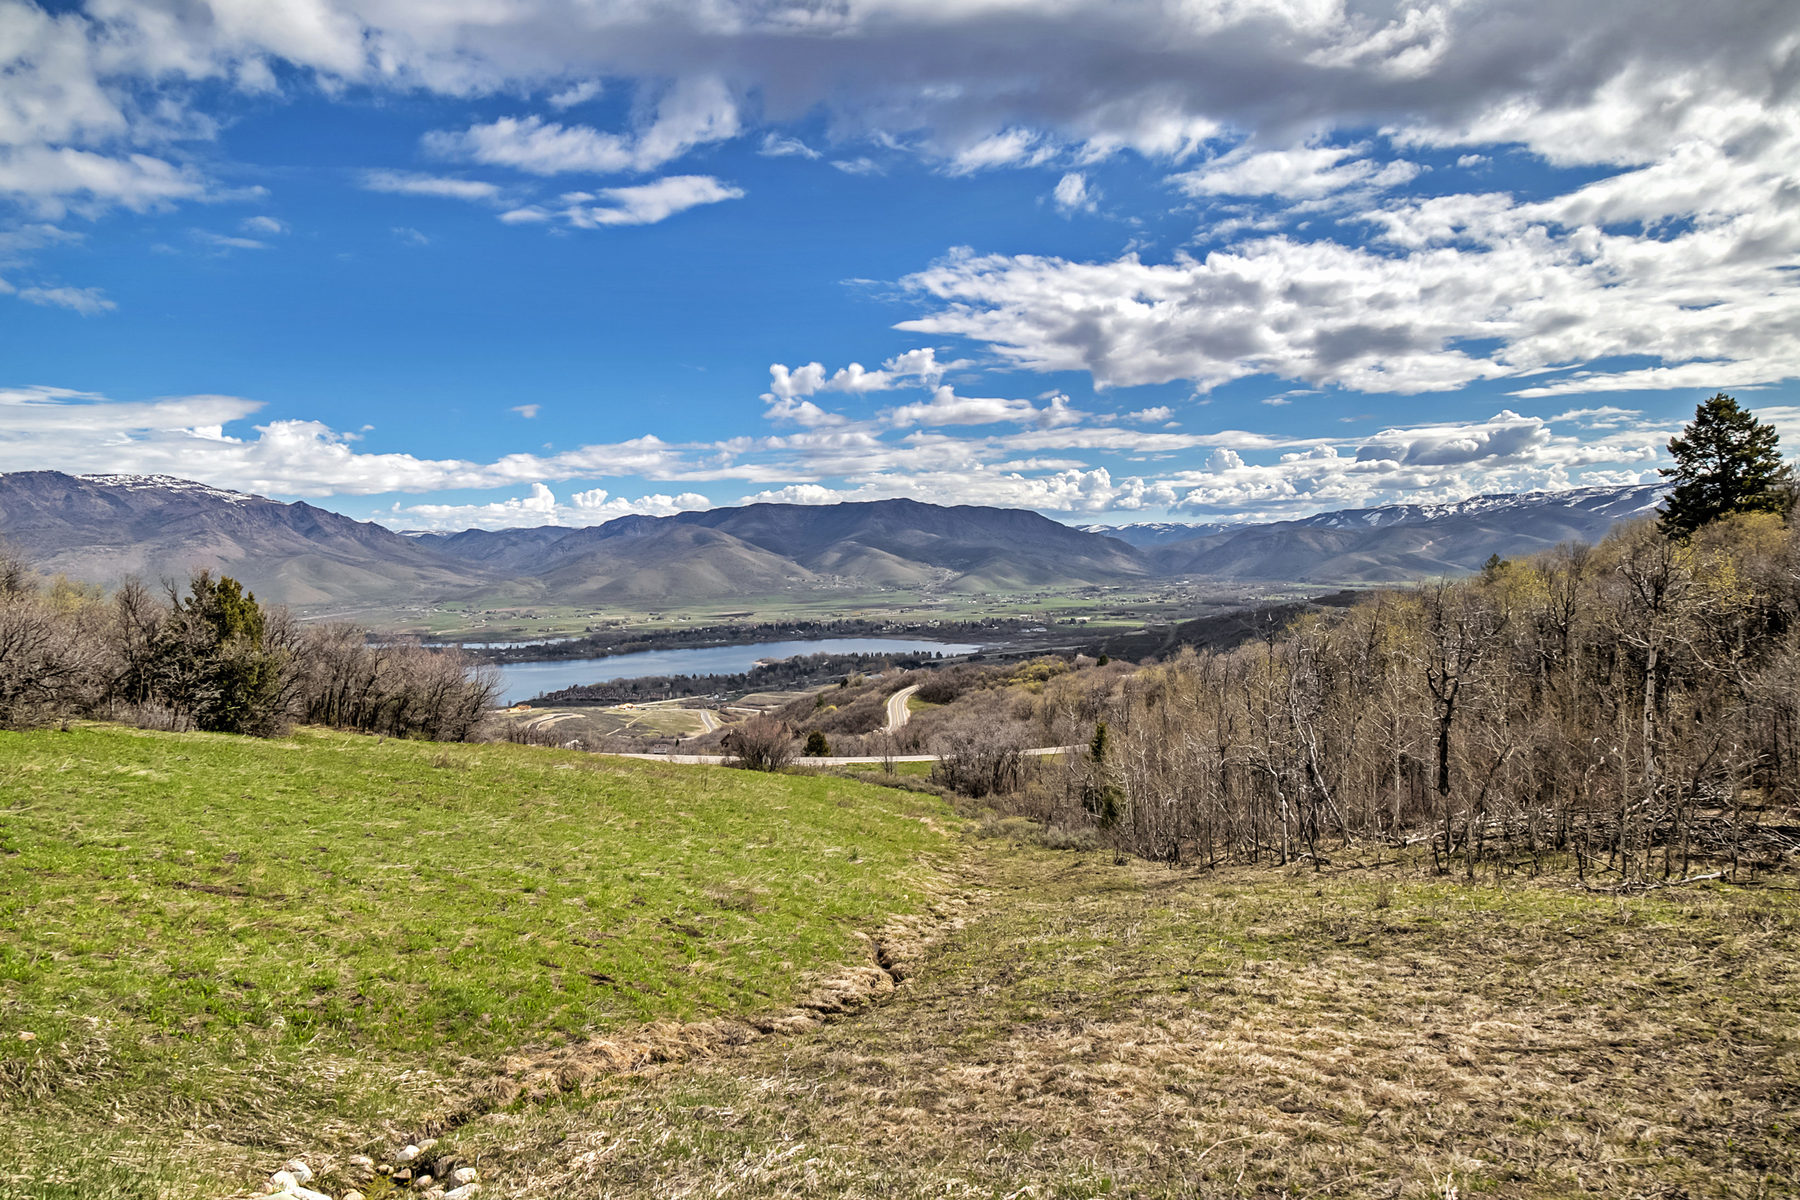 Land for Sale at Most Spectacular View Lots in the Wasatch Range 5608 E Sundance Cir Lot 2 Huntsville, Utah 84317 United States